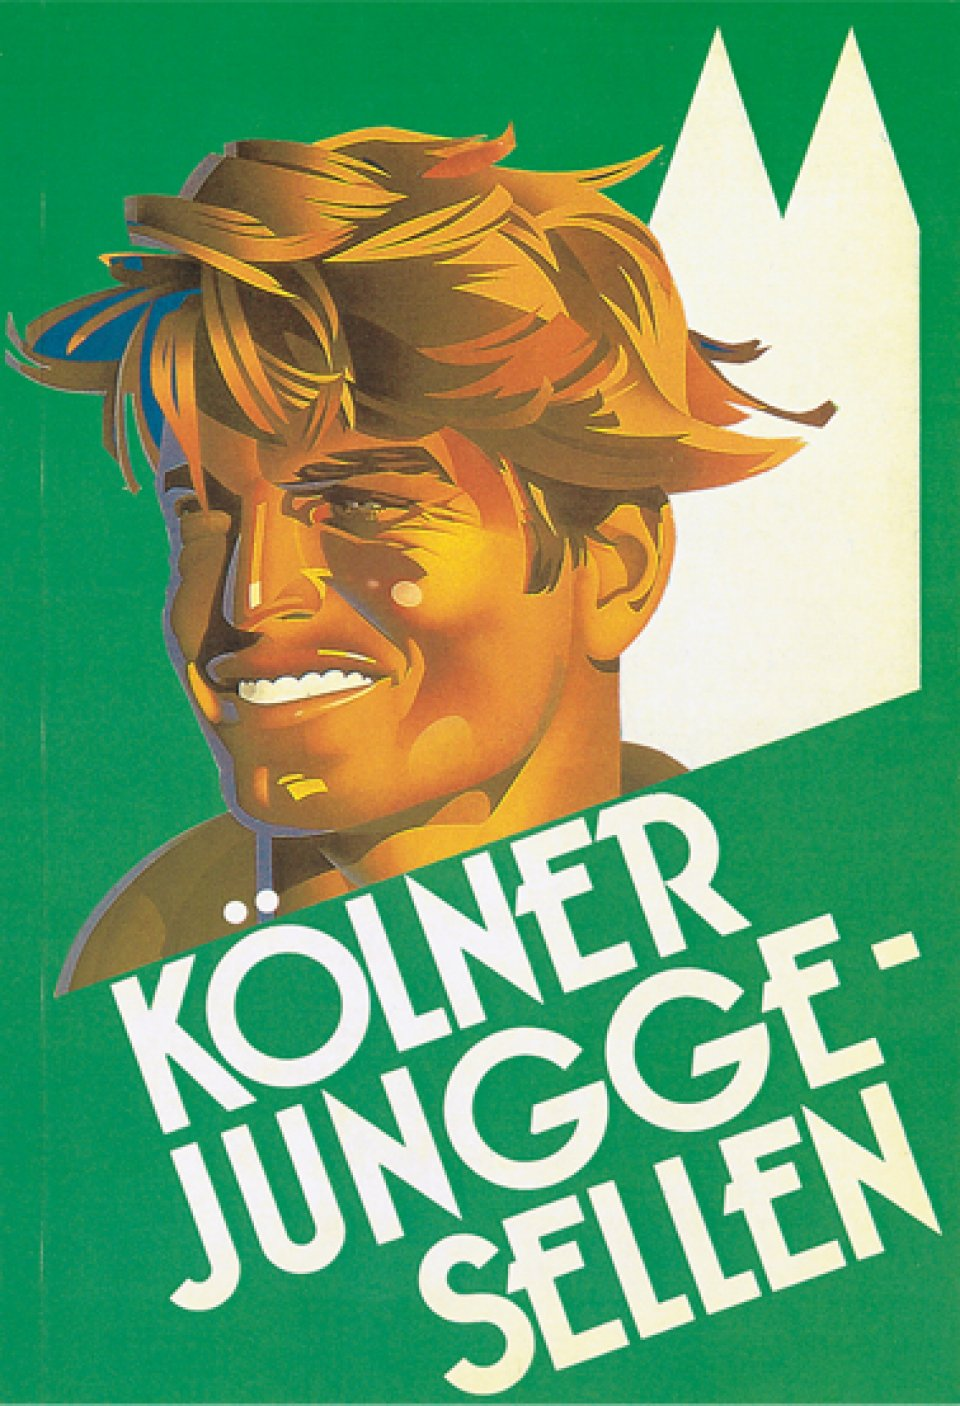 Kölner Junggesellen, i.e. Cologne Bachelors, a photo guide to the city's single men